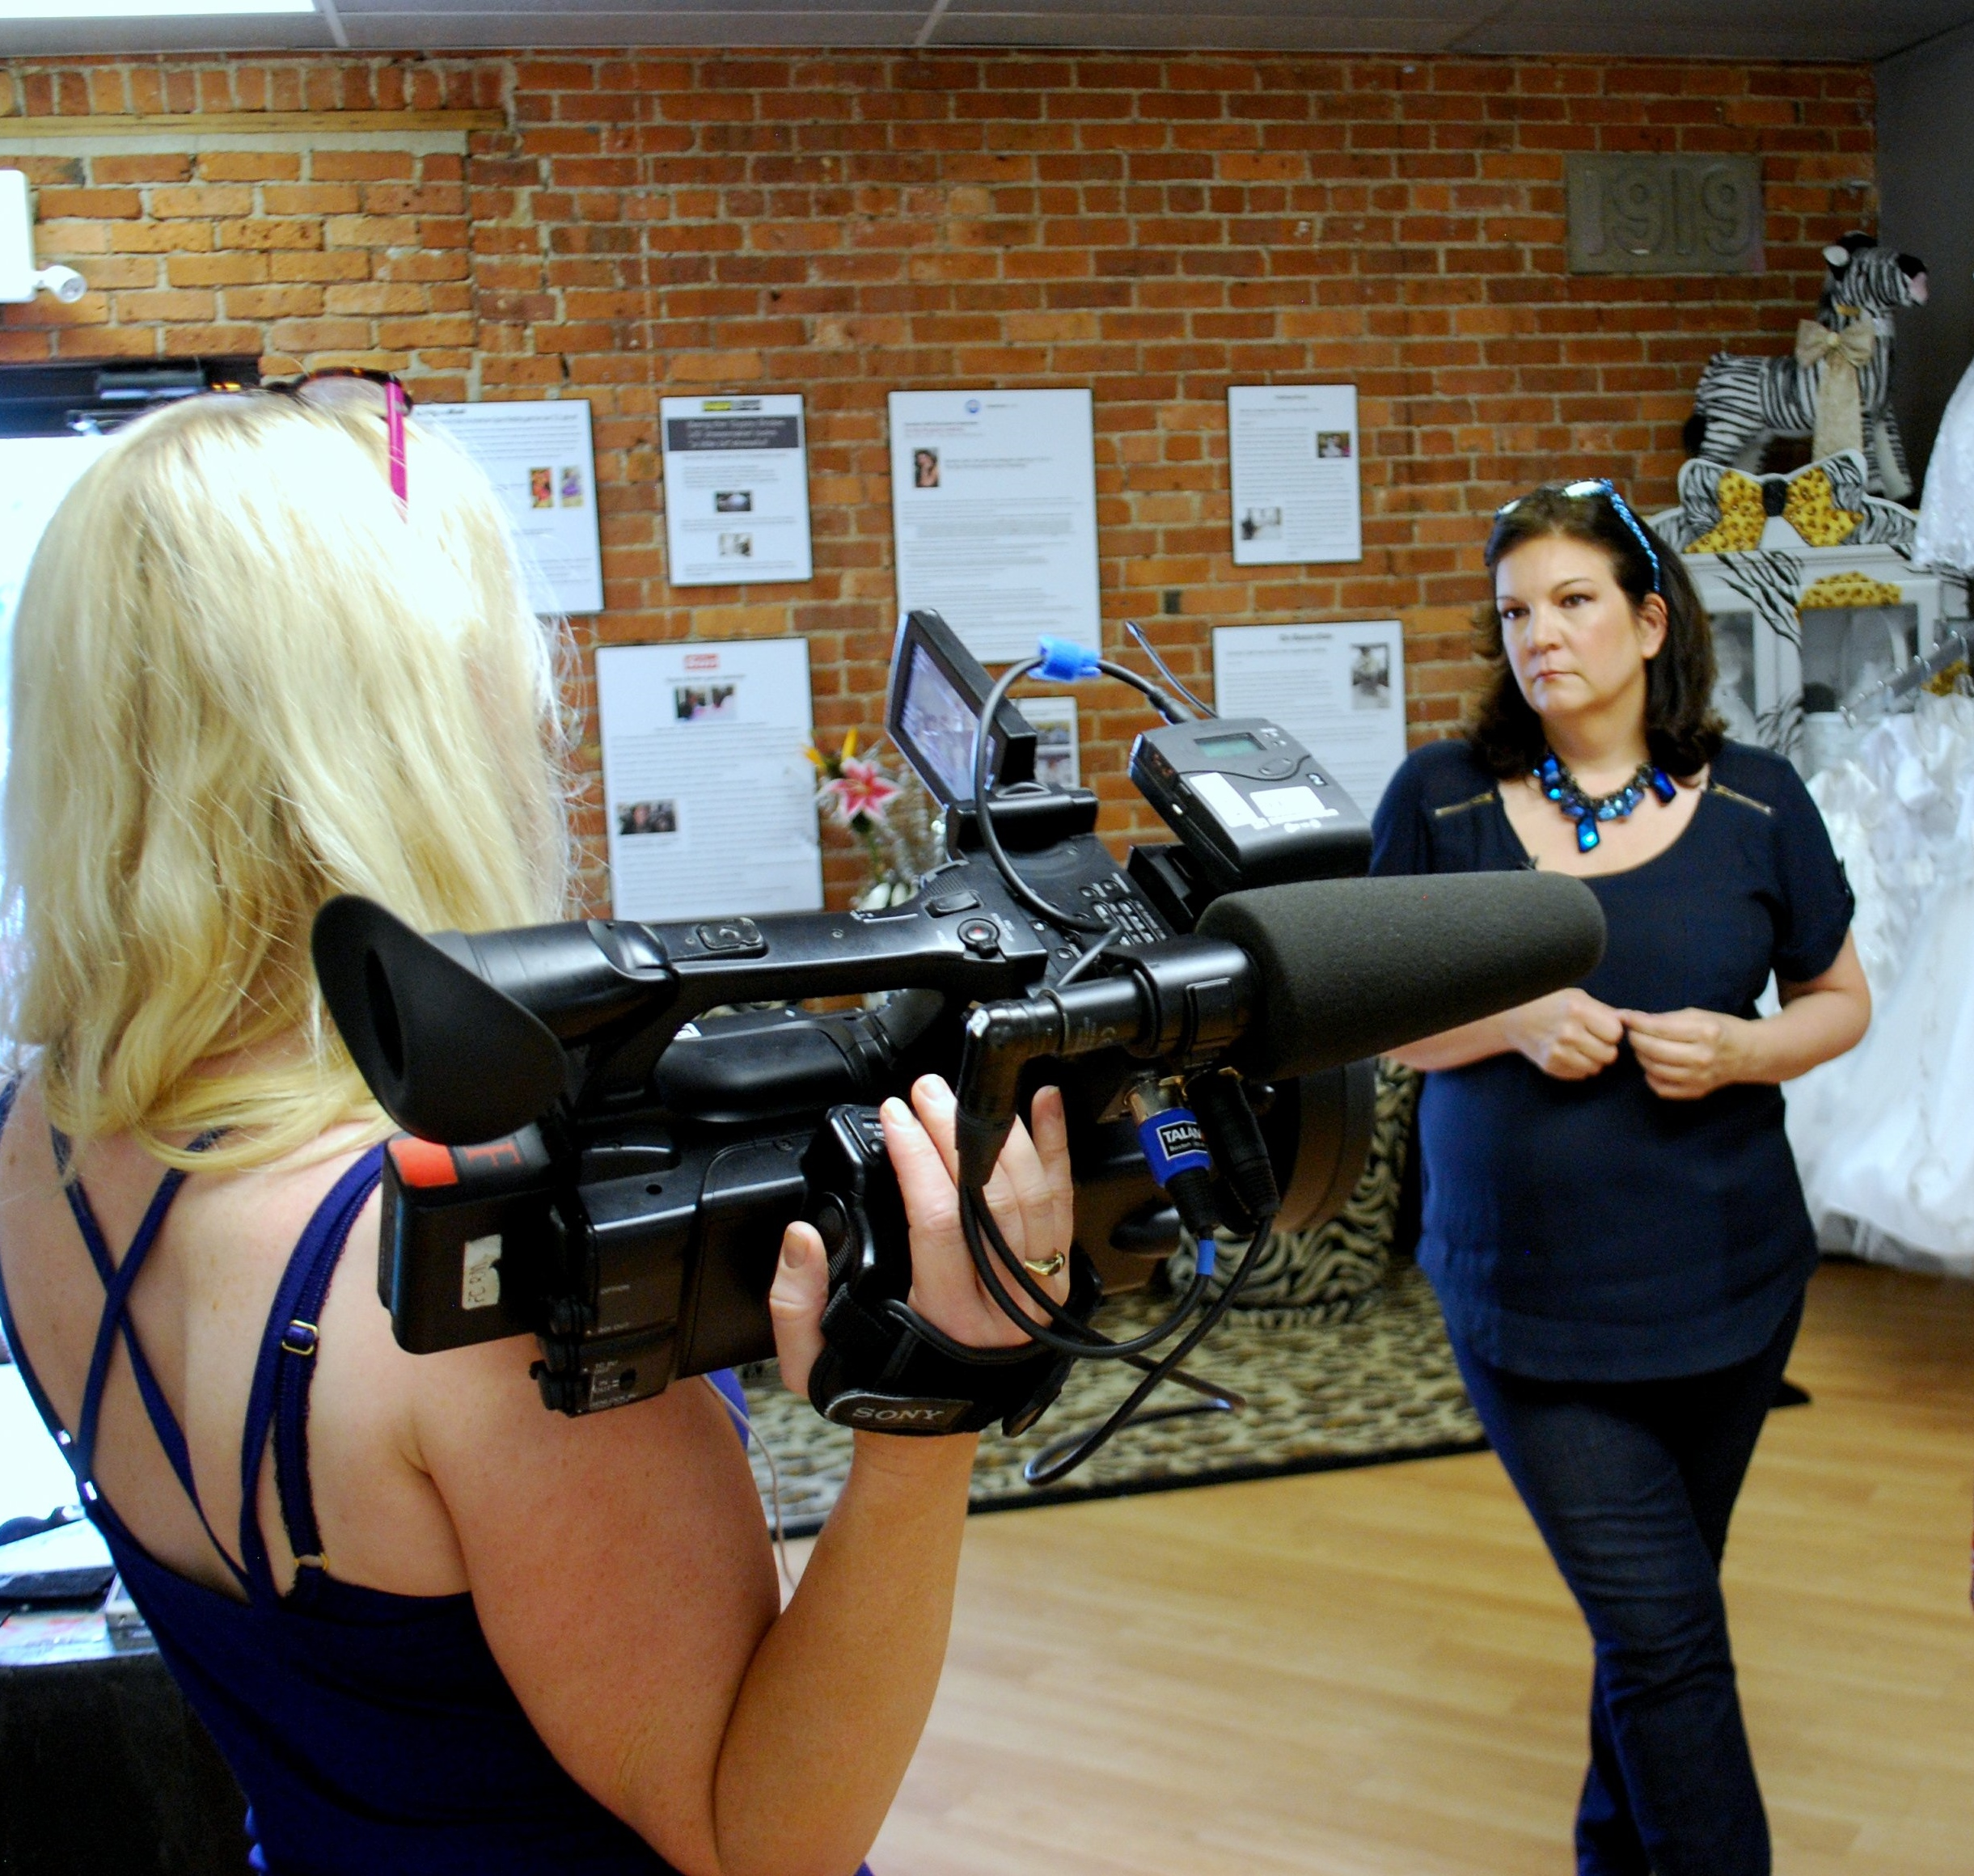 Caption: Sondra talking to photog, Credit: Sondra Celli